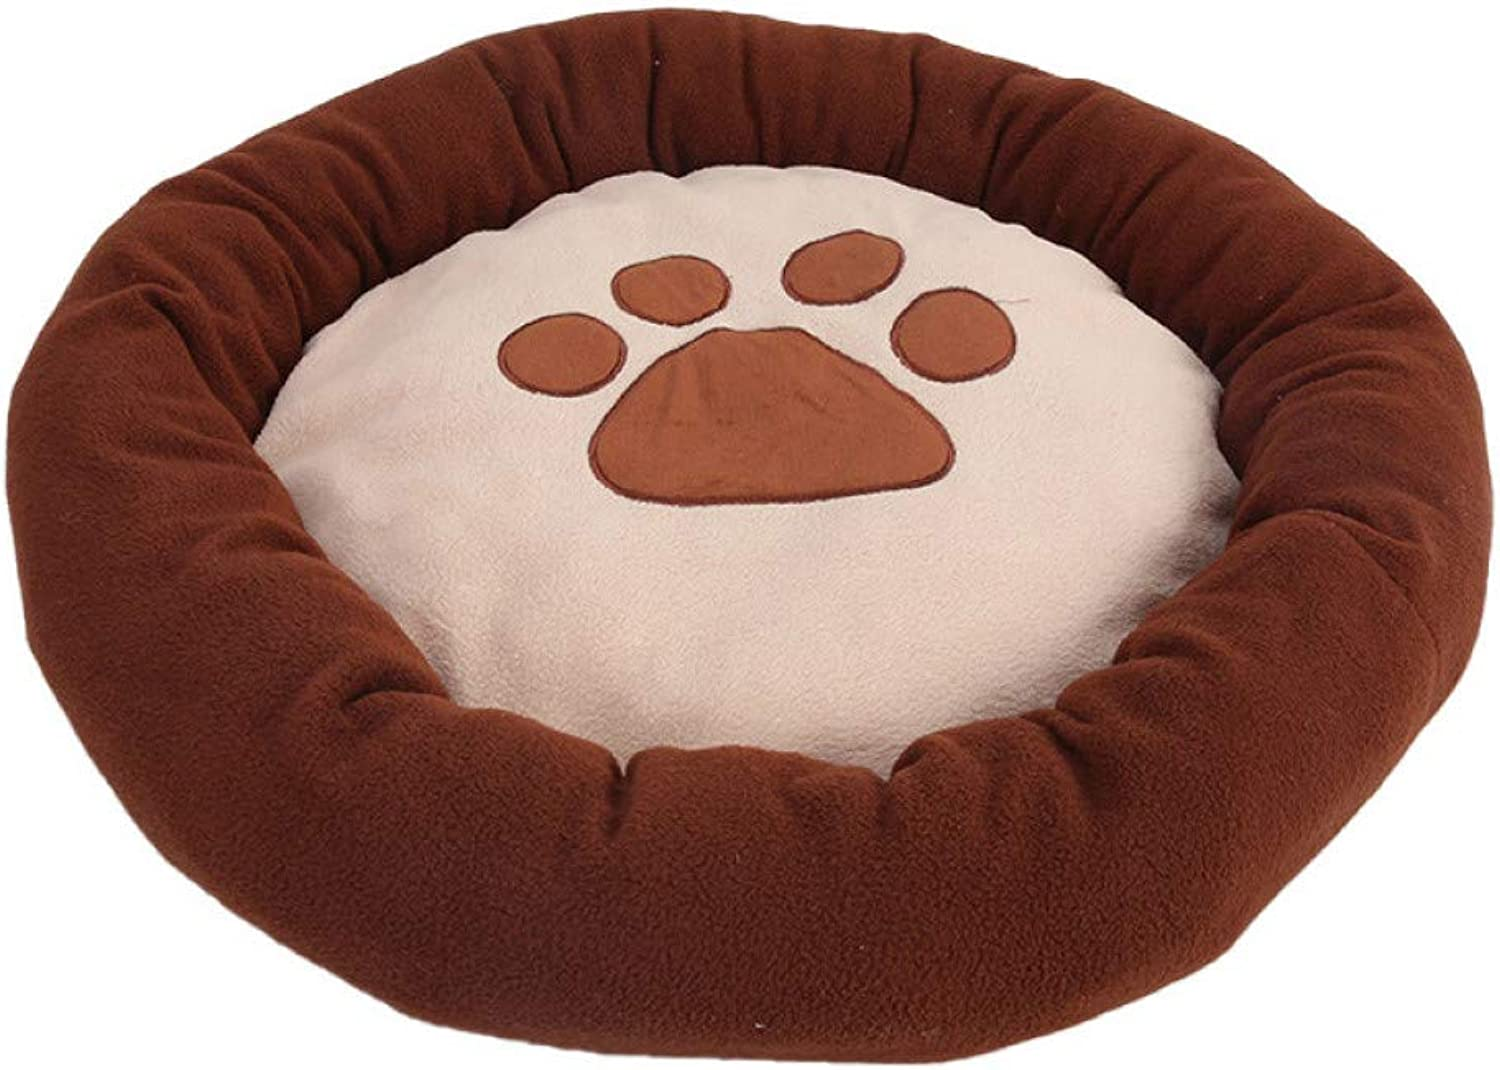 CZHCFF Puppy mattress soft plush puppy bed winter cat bed warm bed pet bed